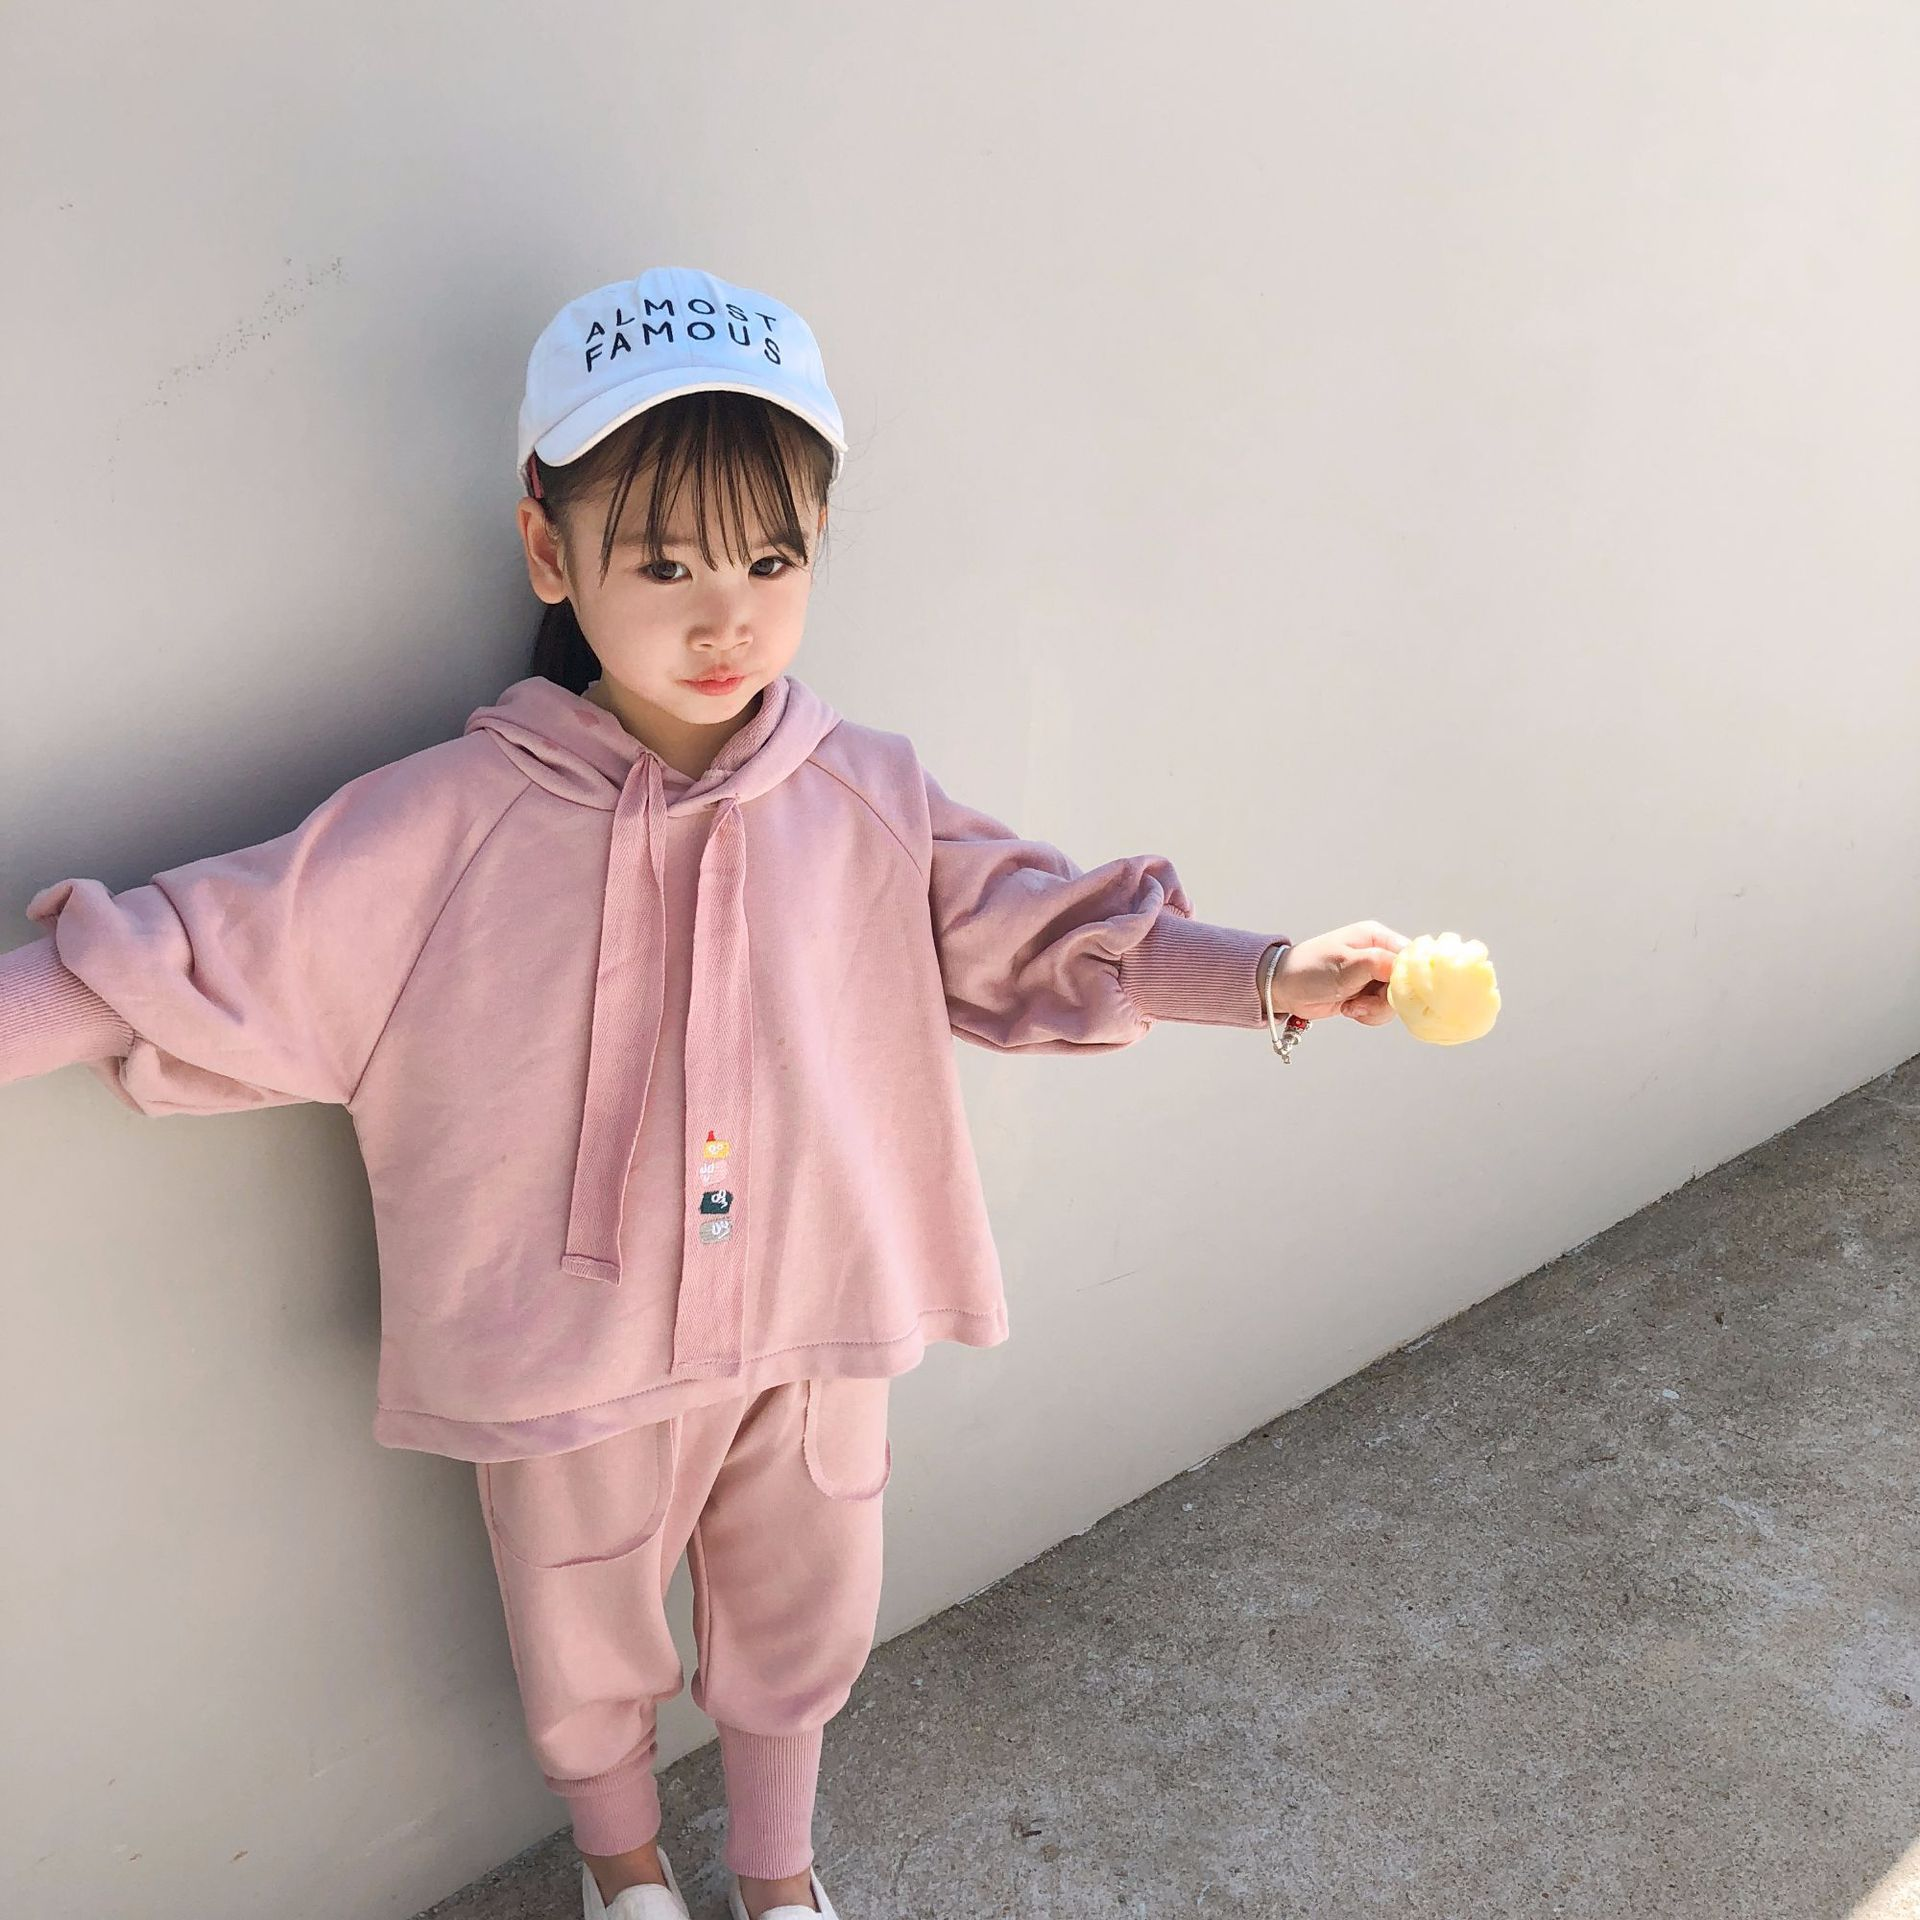 2019 Spring New Arrival Korean Style Cotton Clothing Sets Hooded Hoodie With Harlen Long Pants Fashion Suit For Cute Baby Girls Buy One Get One Free